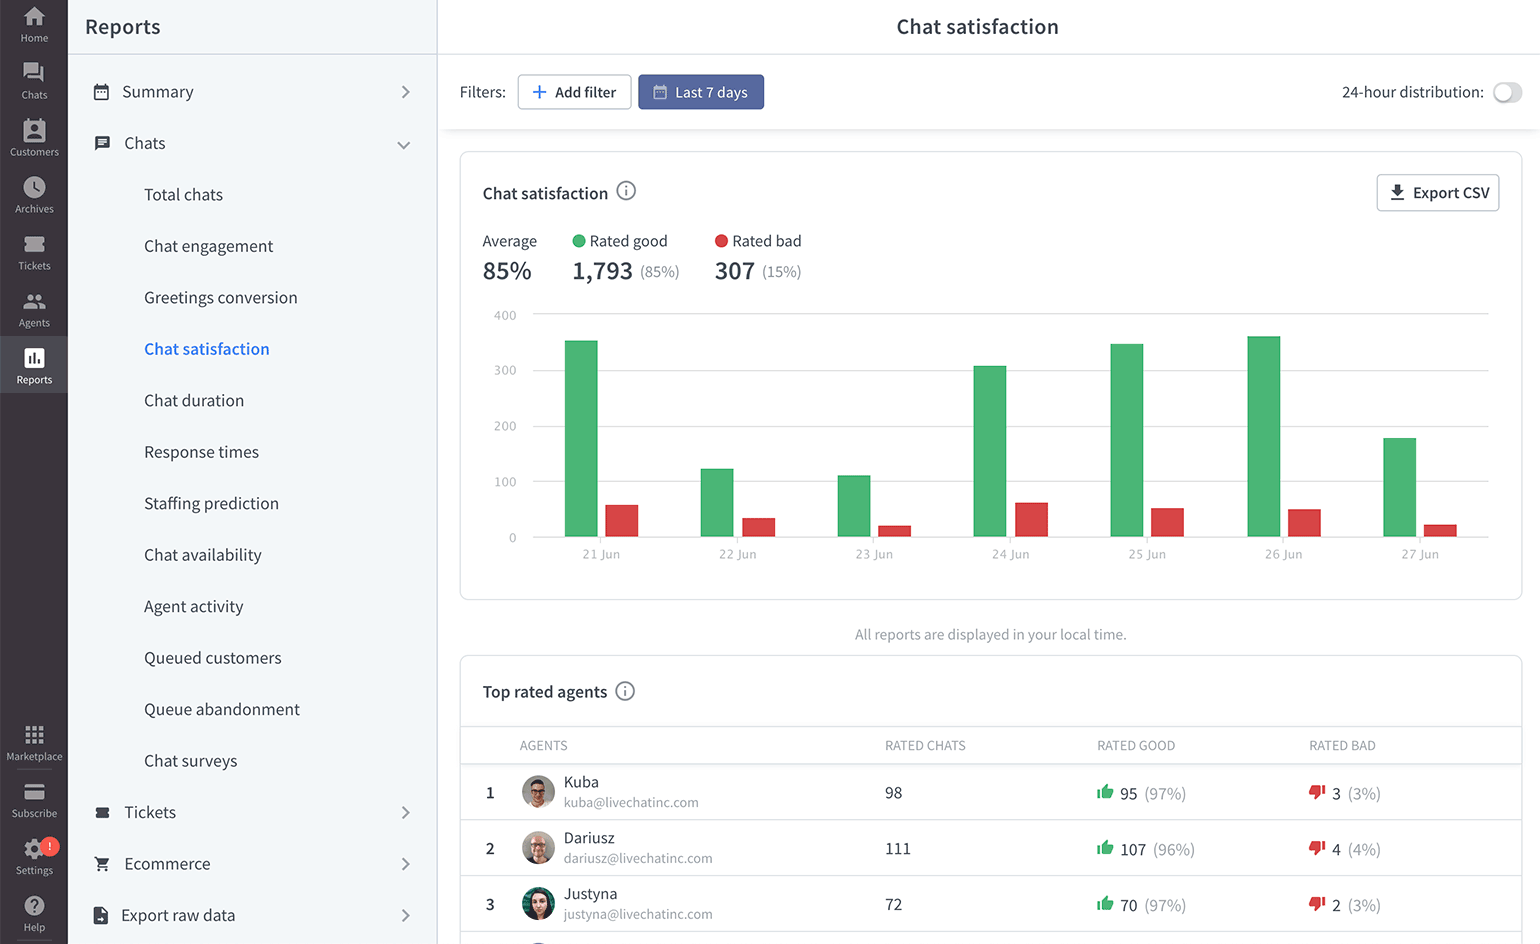 LiveChat chat satisfaction report